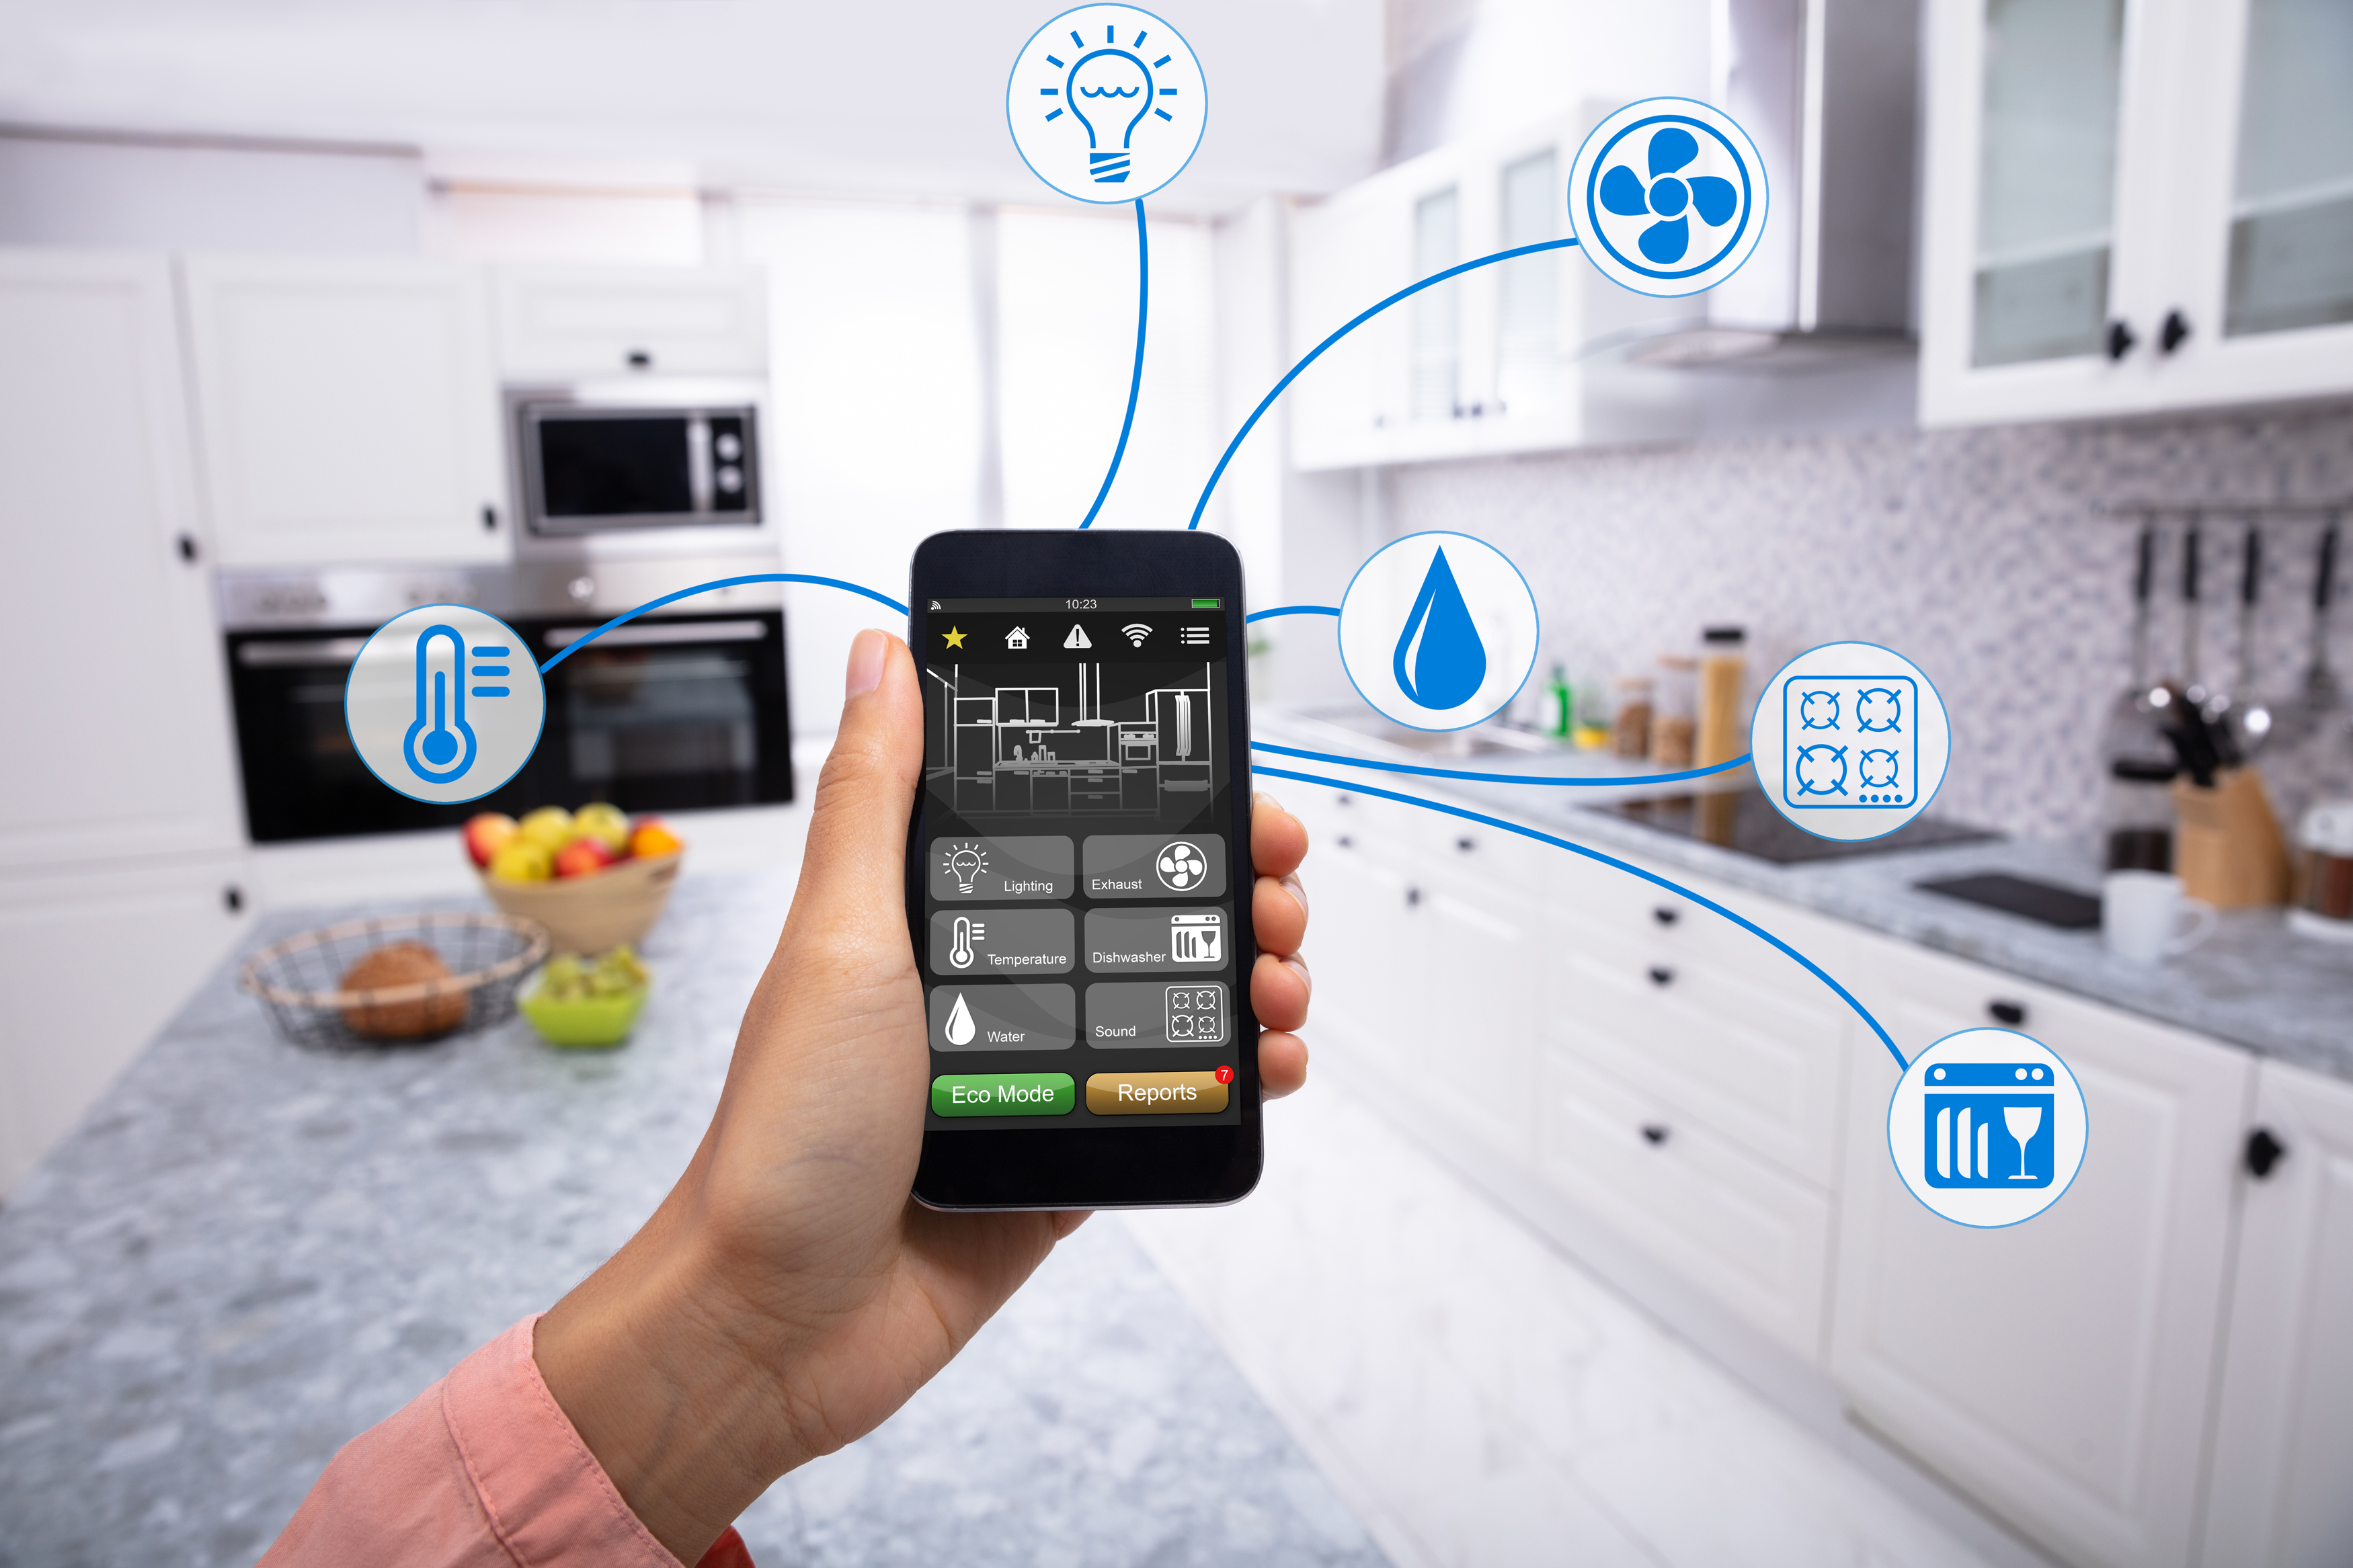 A smart, connected kitchen